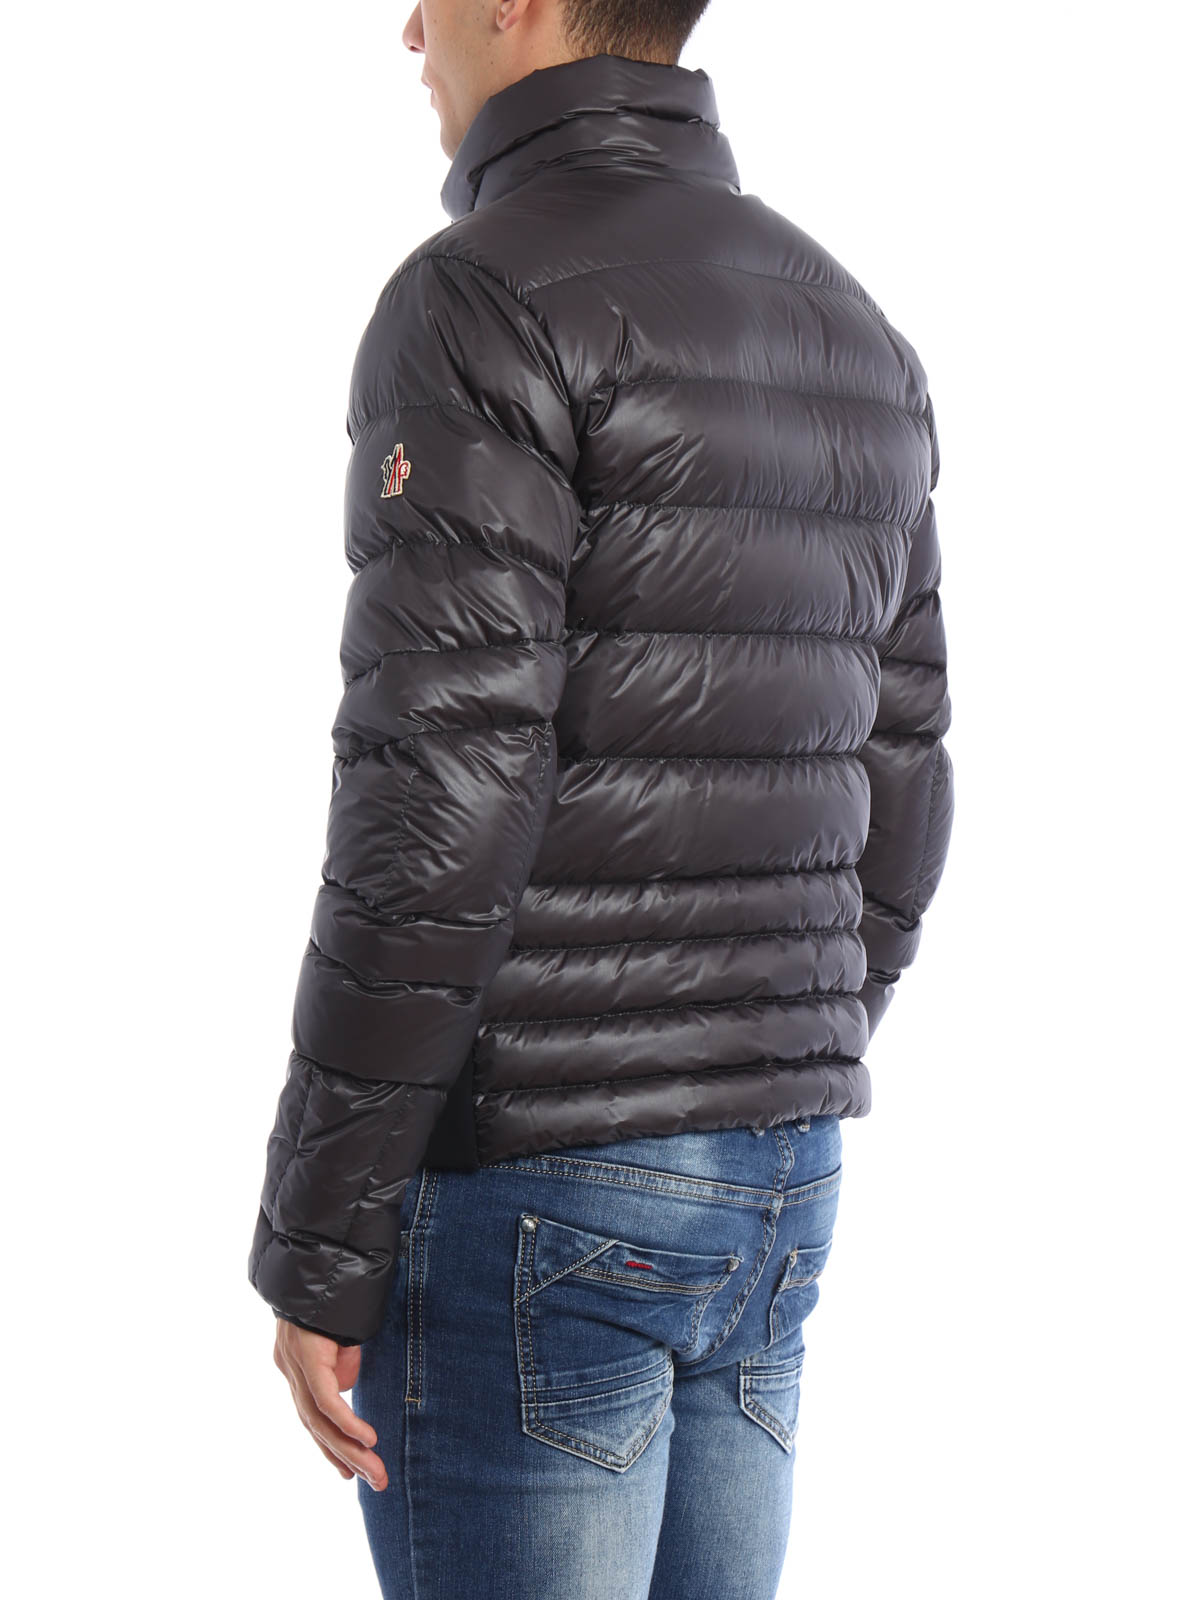 52233ee29 Moncler Grenoble - Canmore down jacket - padded jackets - B2 097 ...